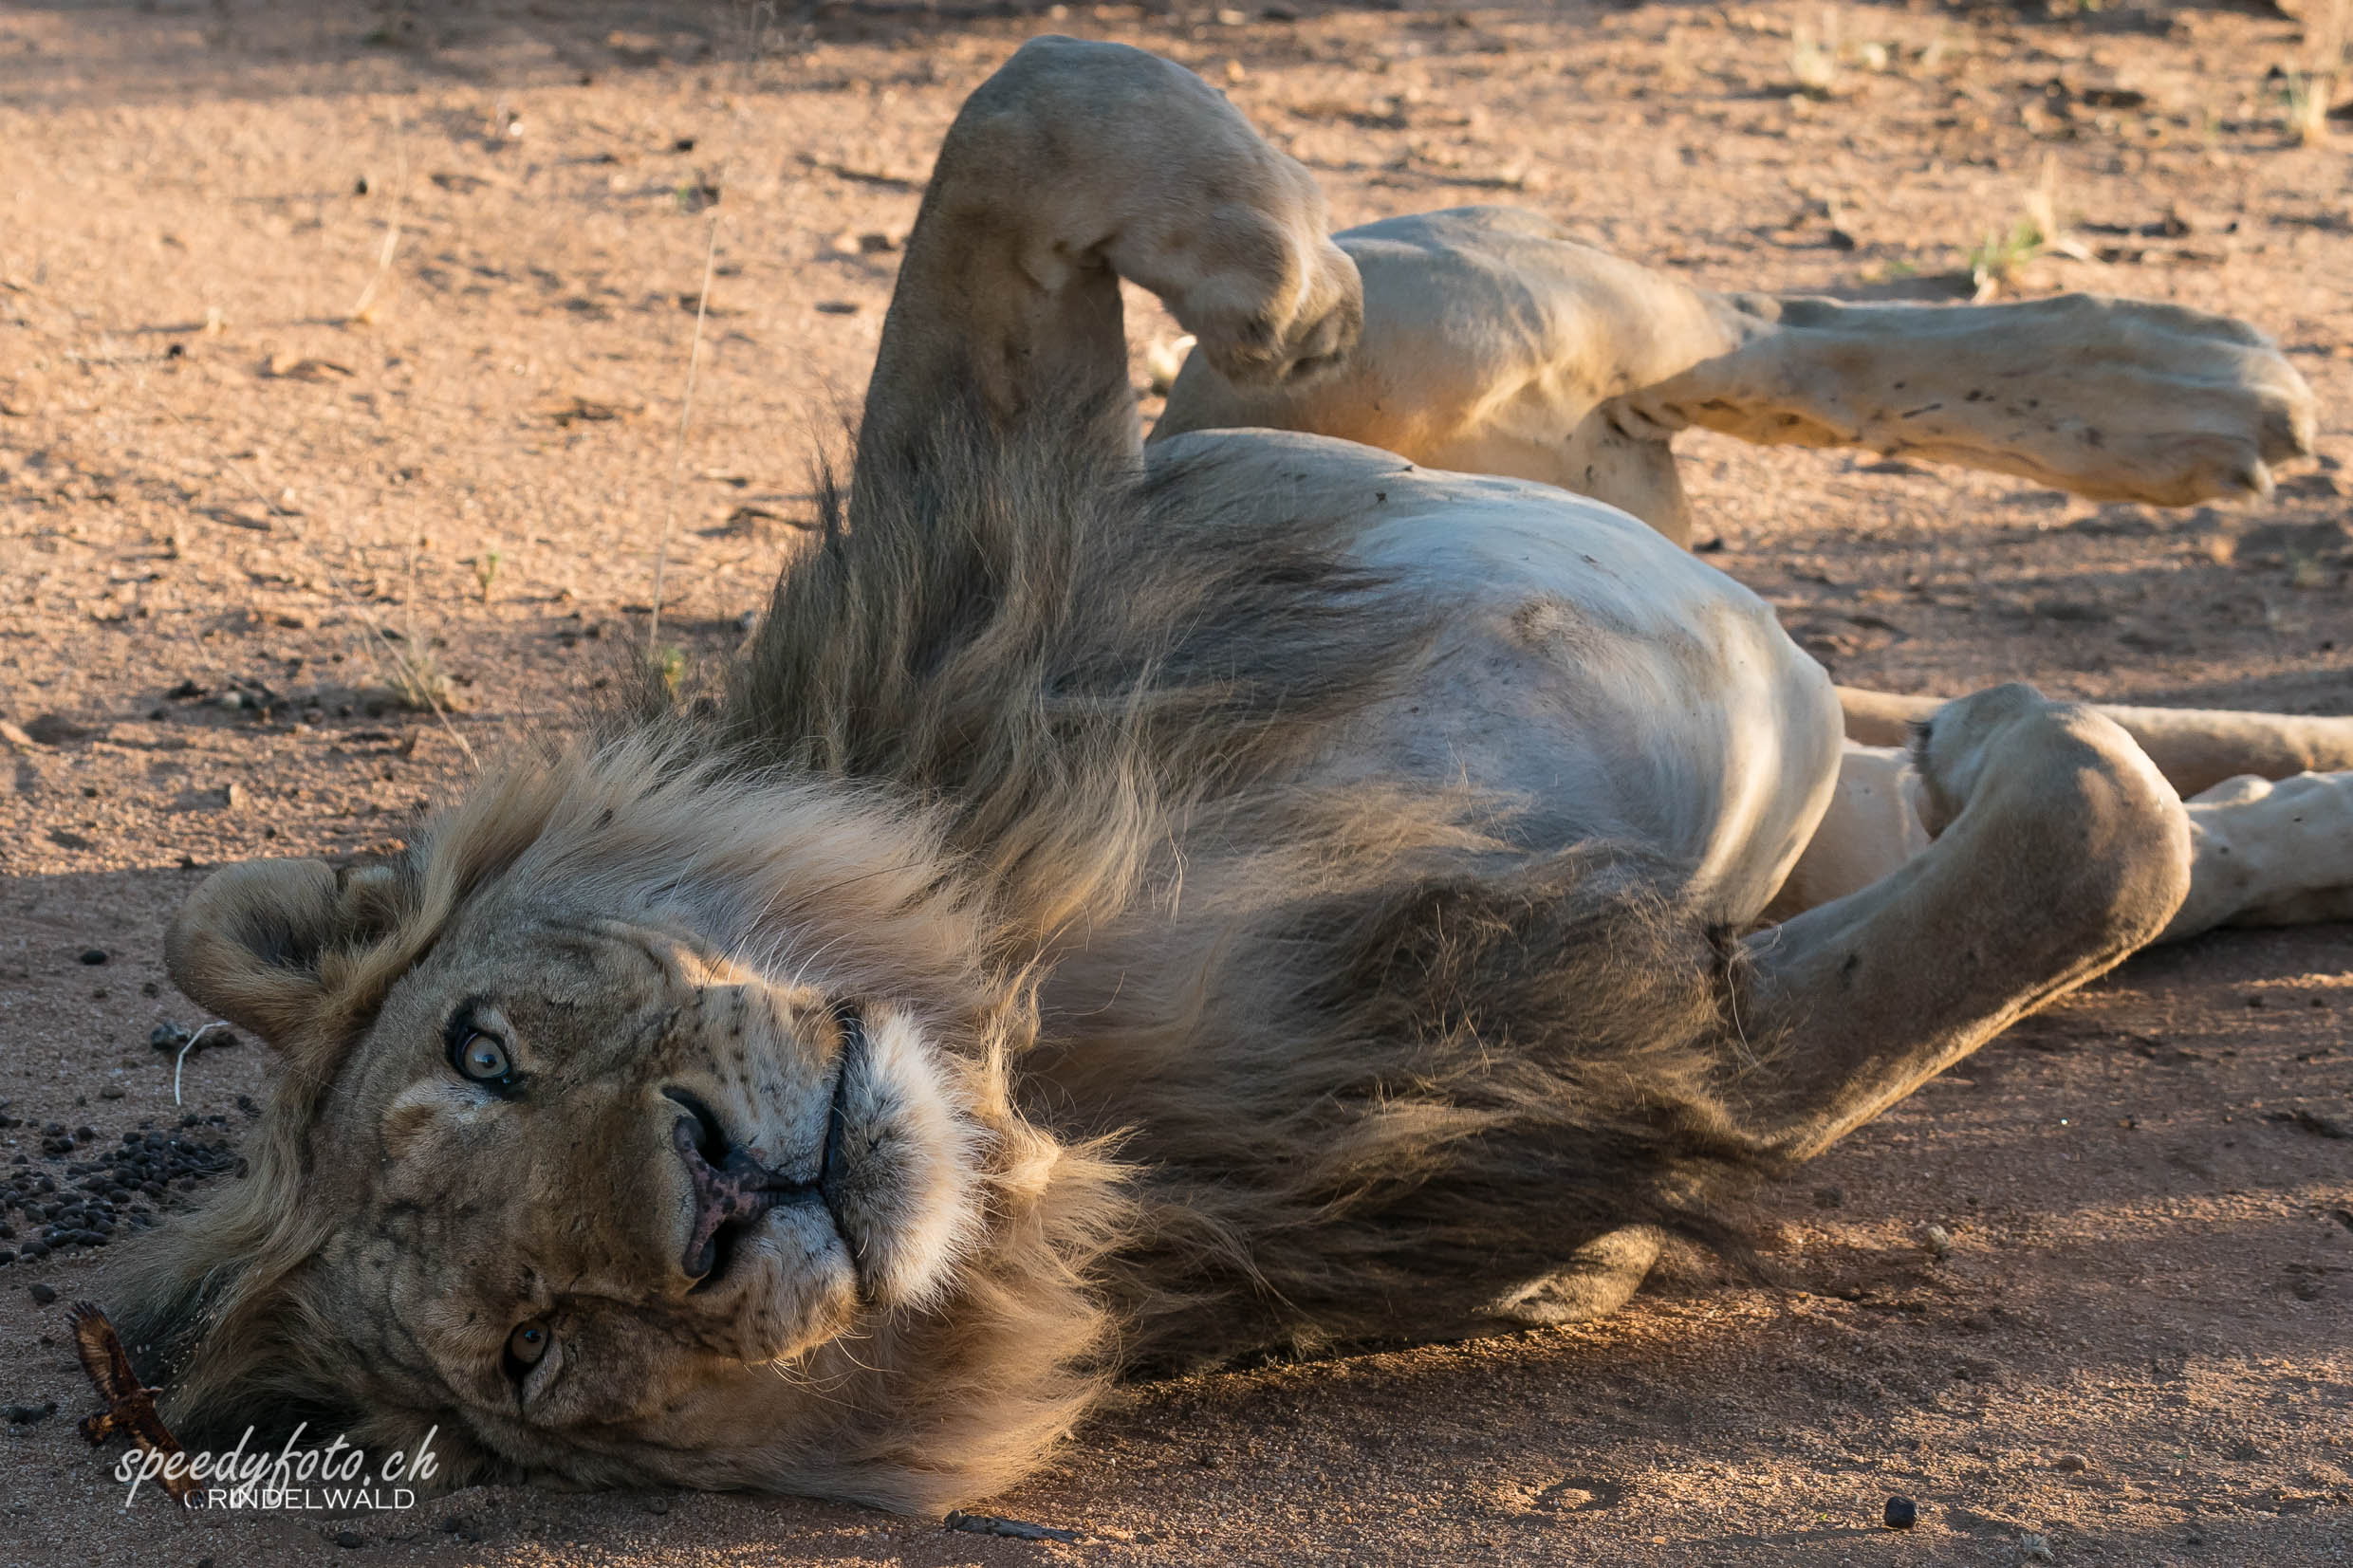 After lunch - Lion